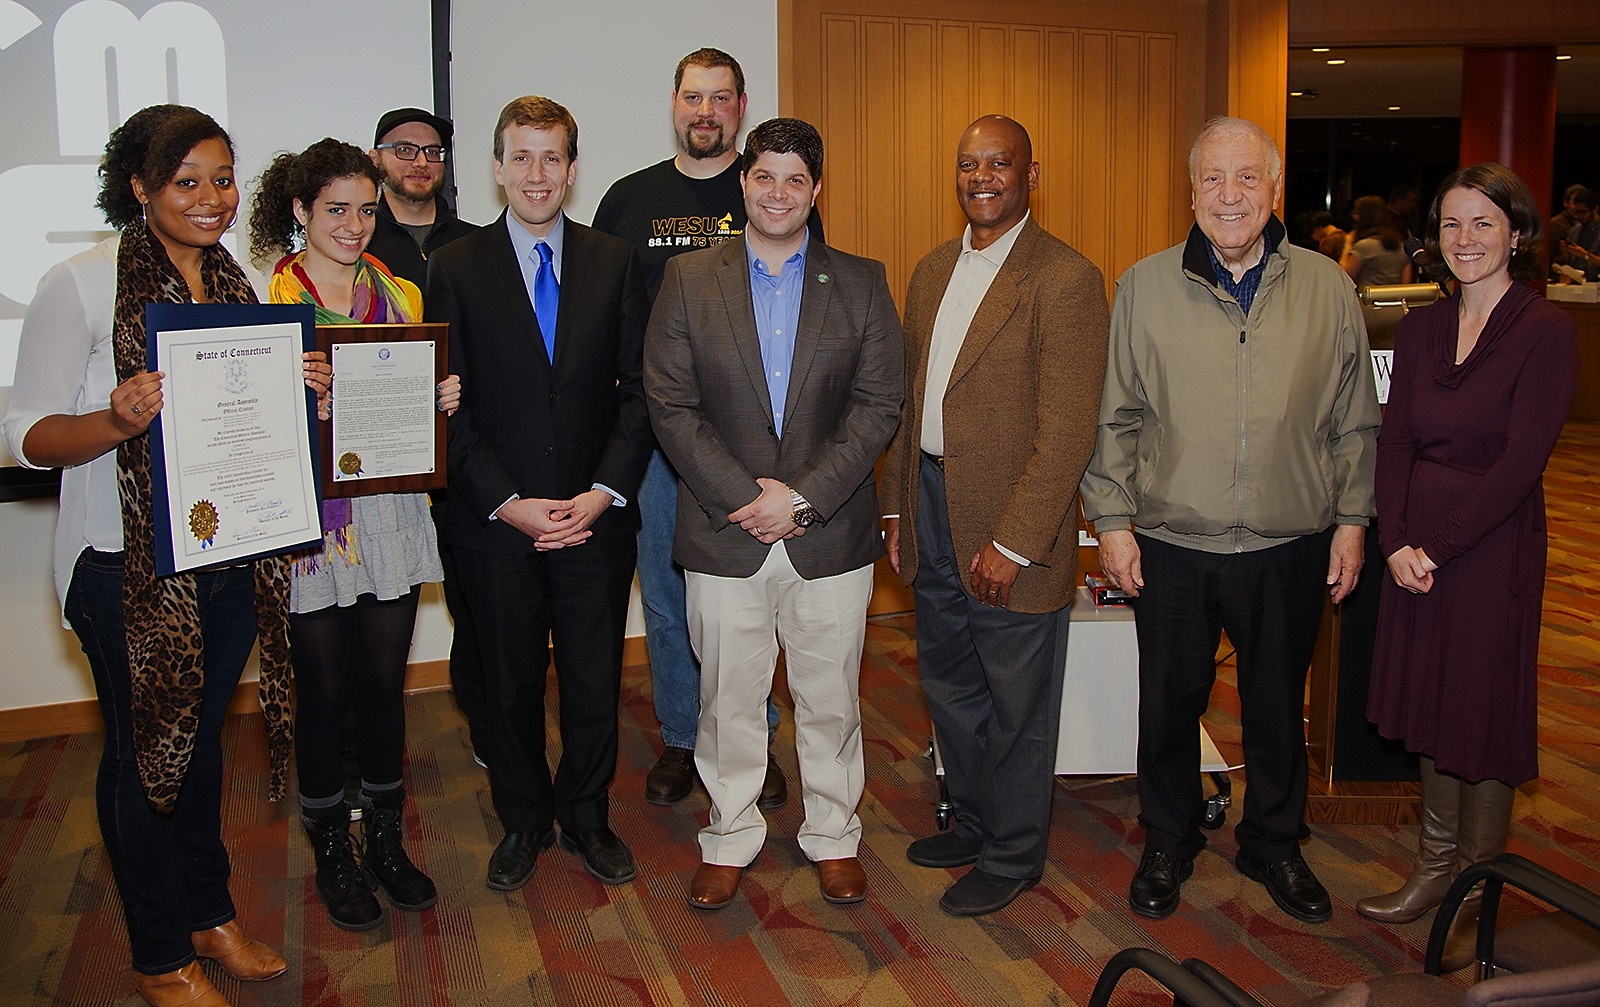 88.1 FM WESU student volunteers and staff celebrated the non-commercial radio station's 75th anniversary on Nov. 2 with several elected officials.